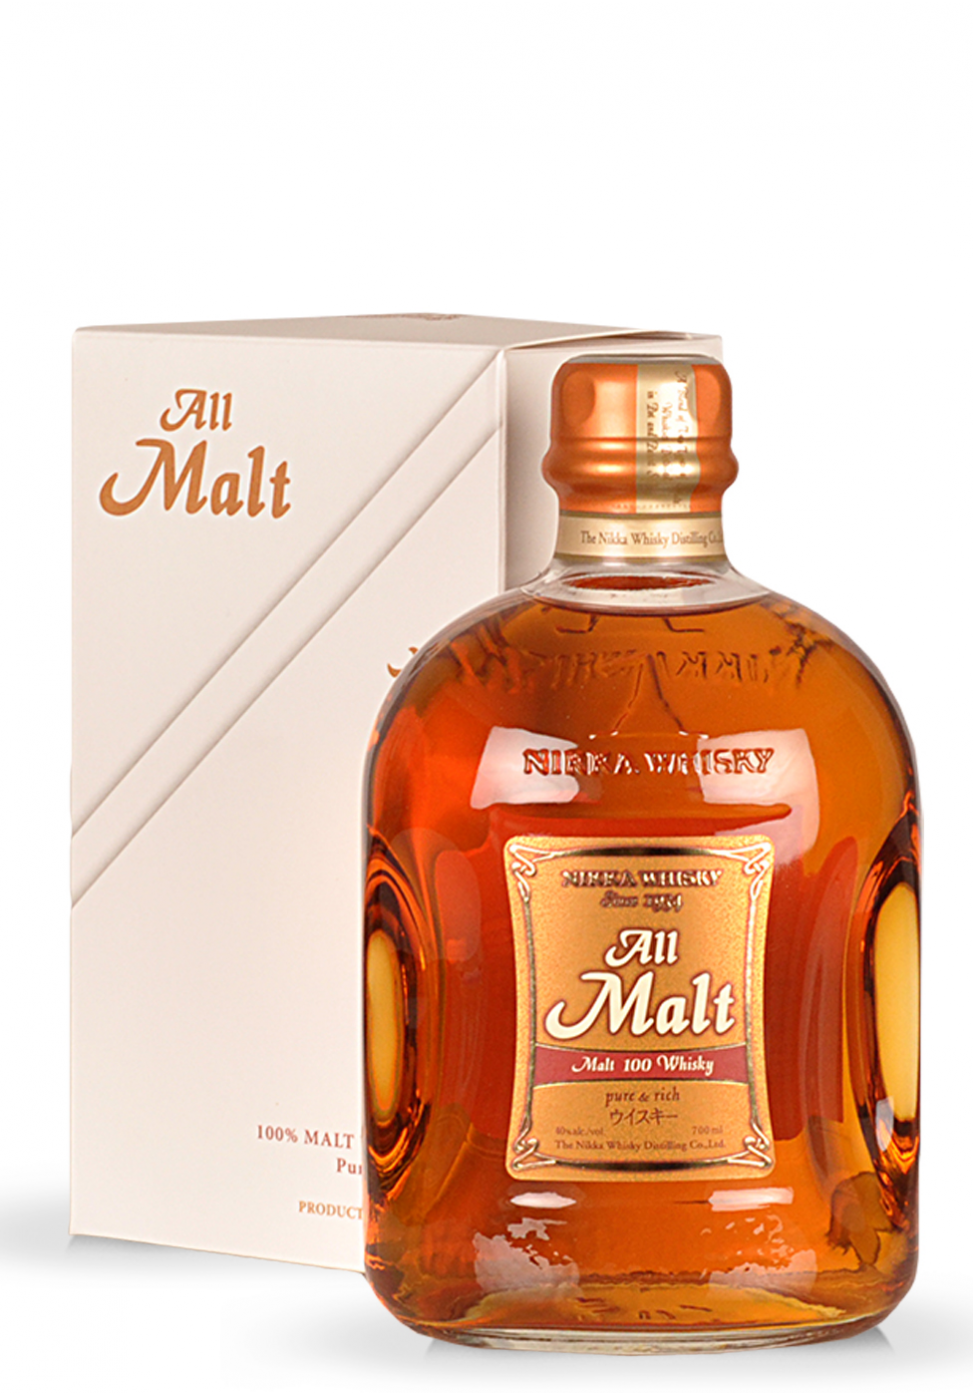 Whisky Nikka All Malt (0.7L)